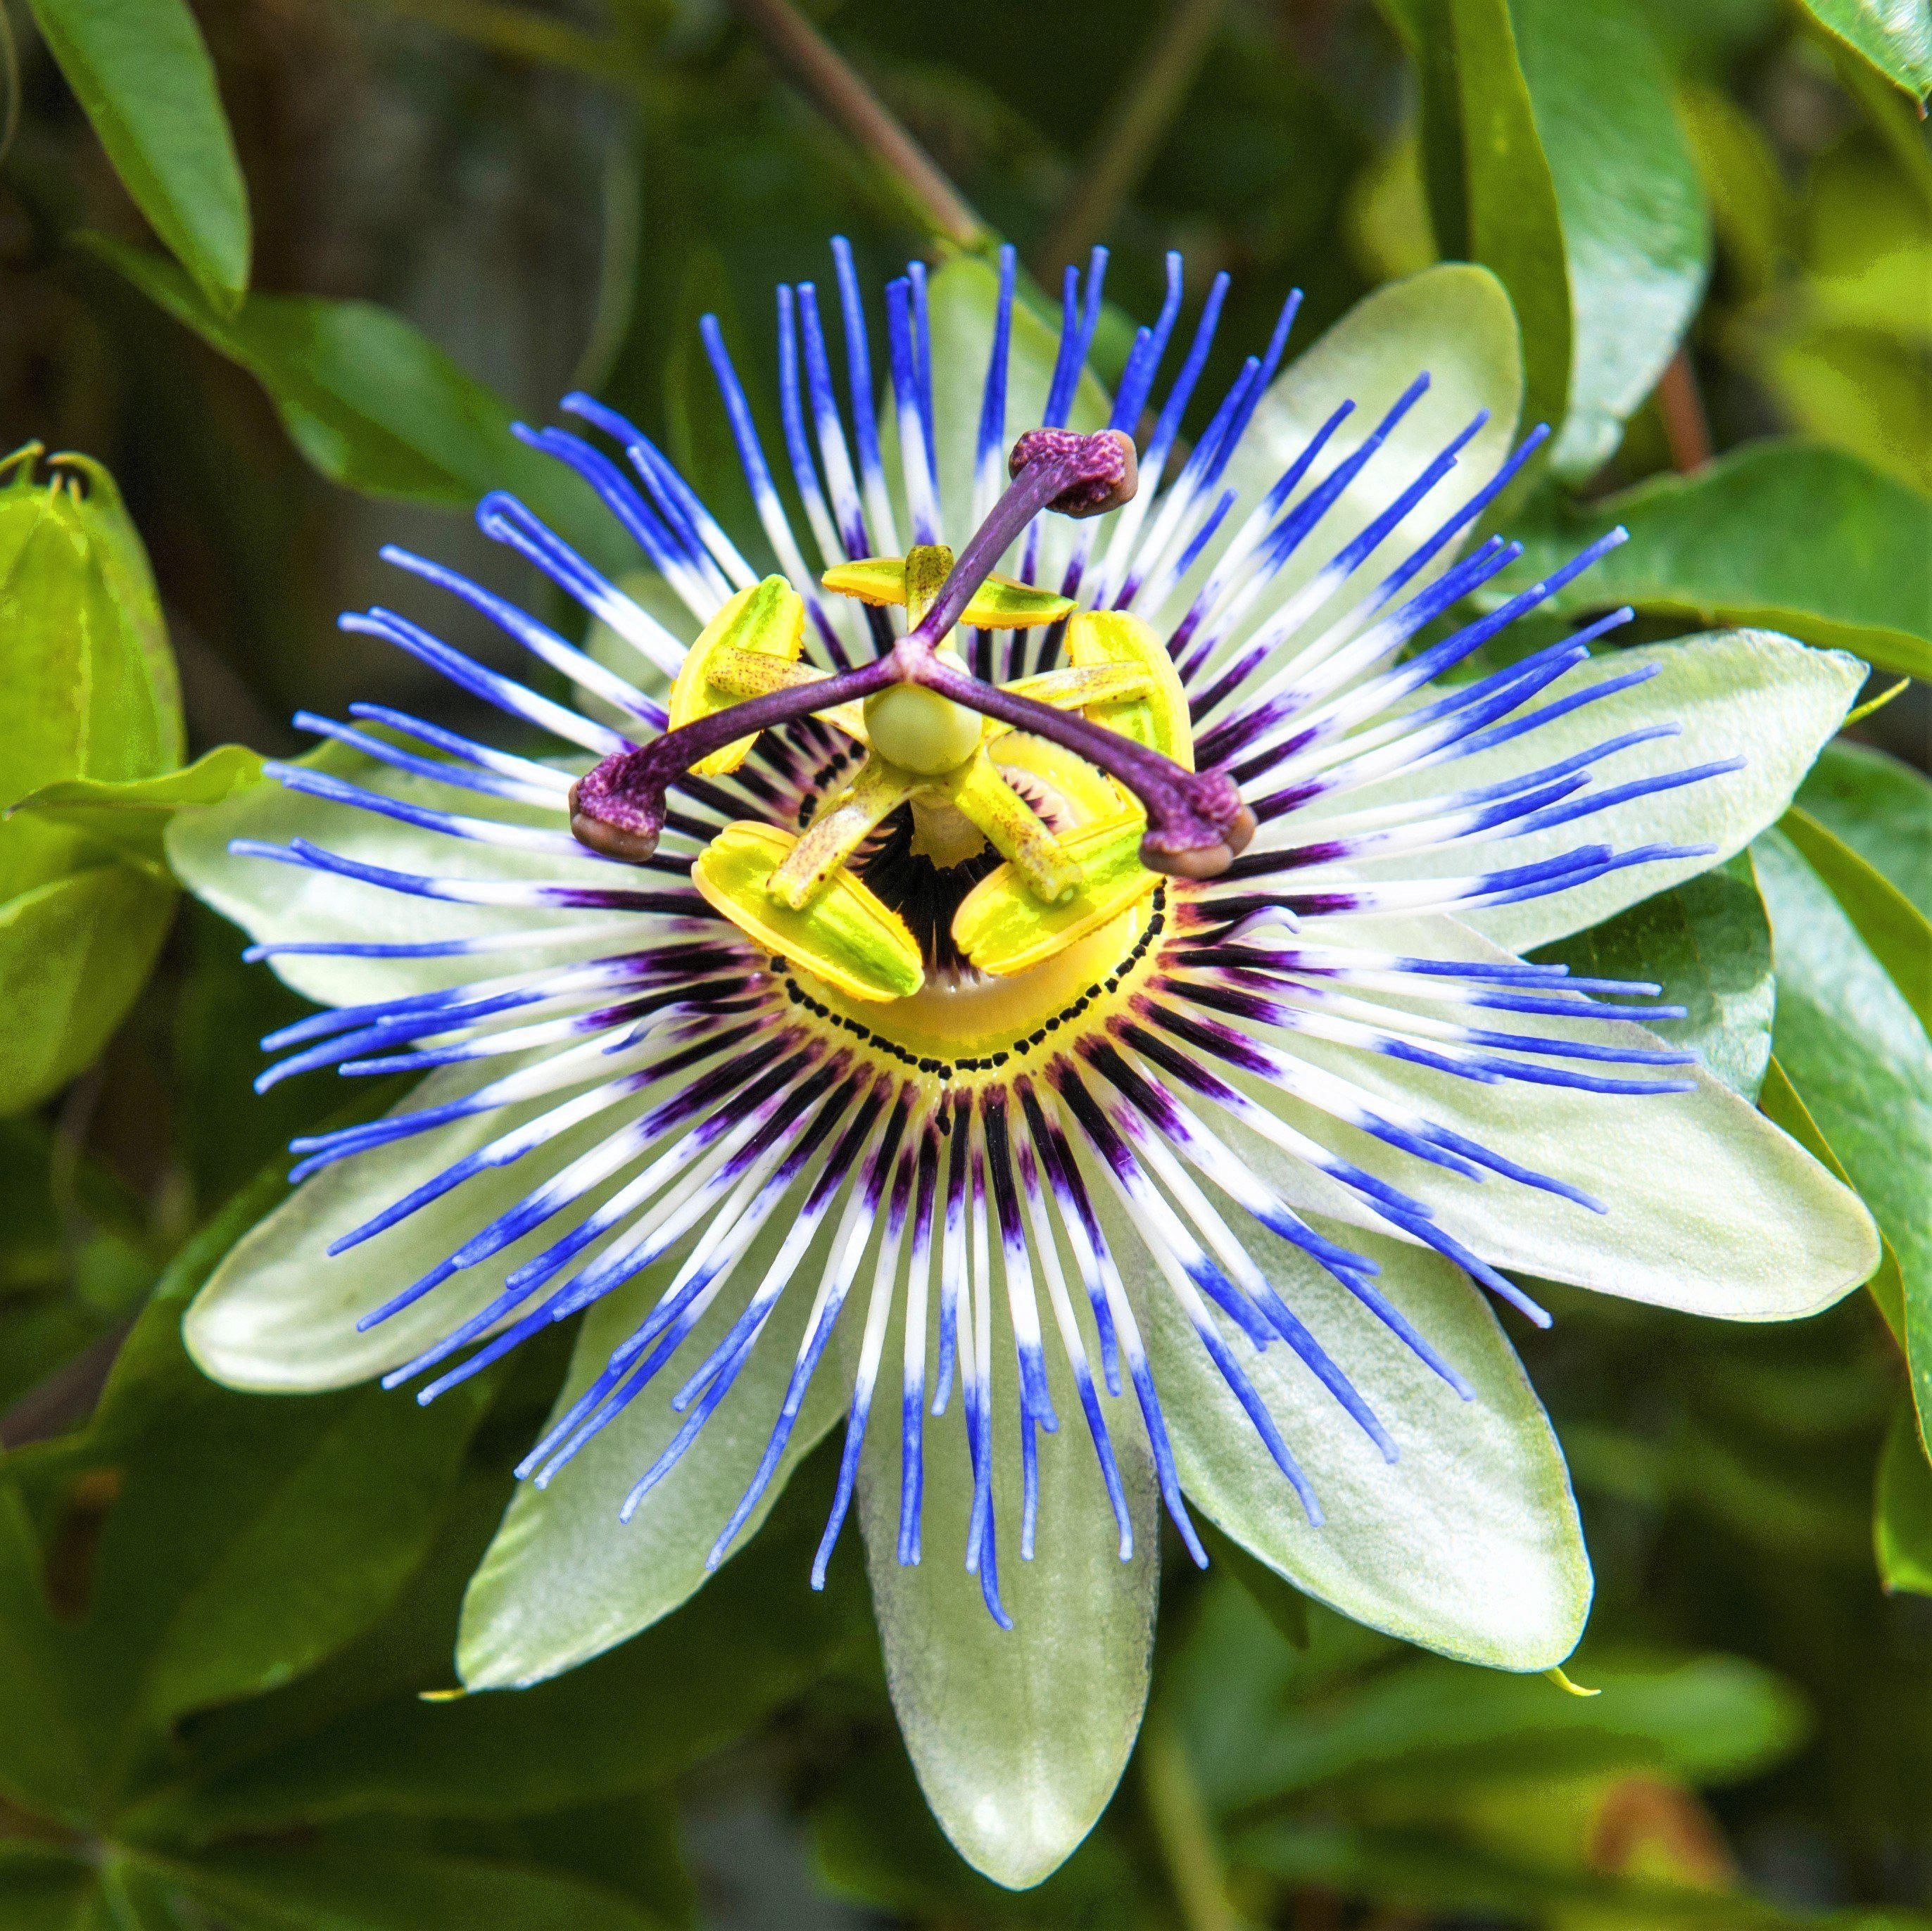 Passionflower Google Search In 2020 Passion Flower Blue Passion Flower Passion Flower Plant